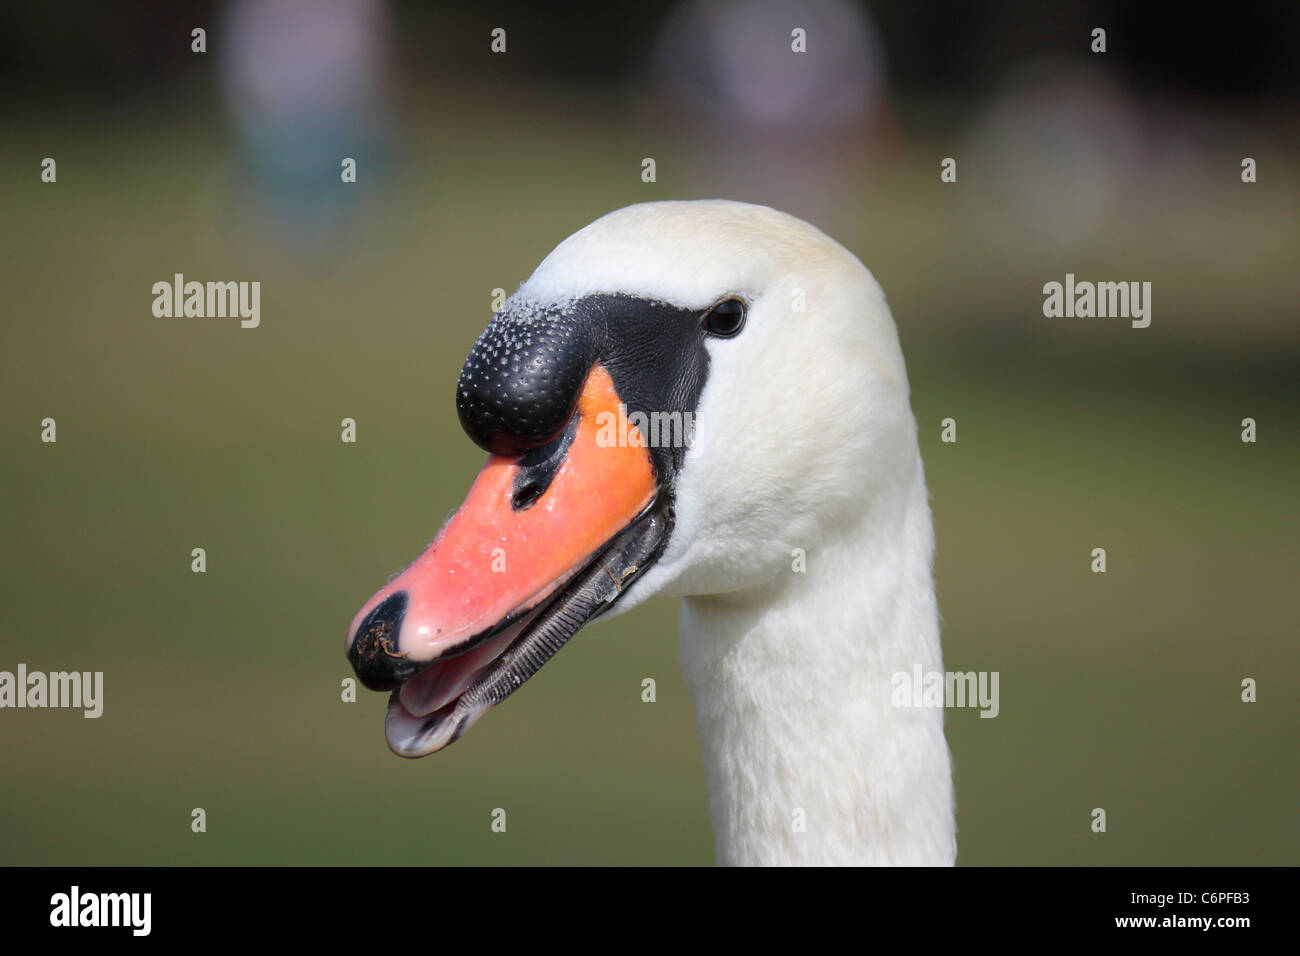 Close up of a white male mute swan's head with its beak slightly open revealing its tongue and the serrations - Stock Image